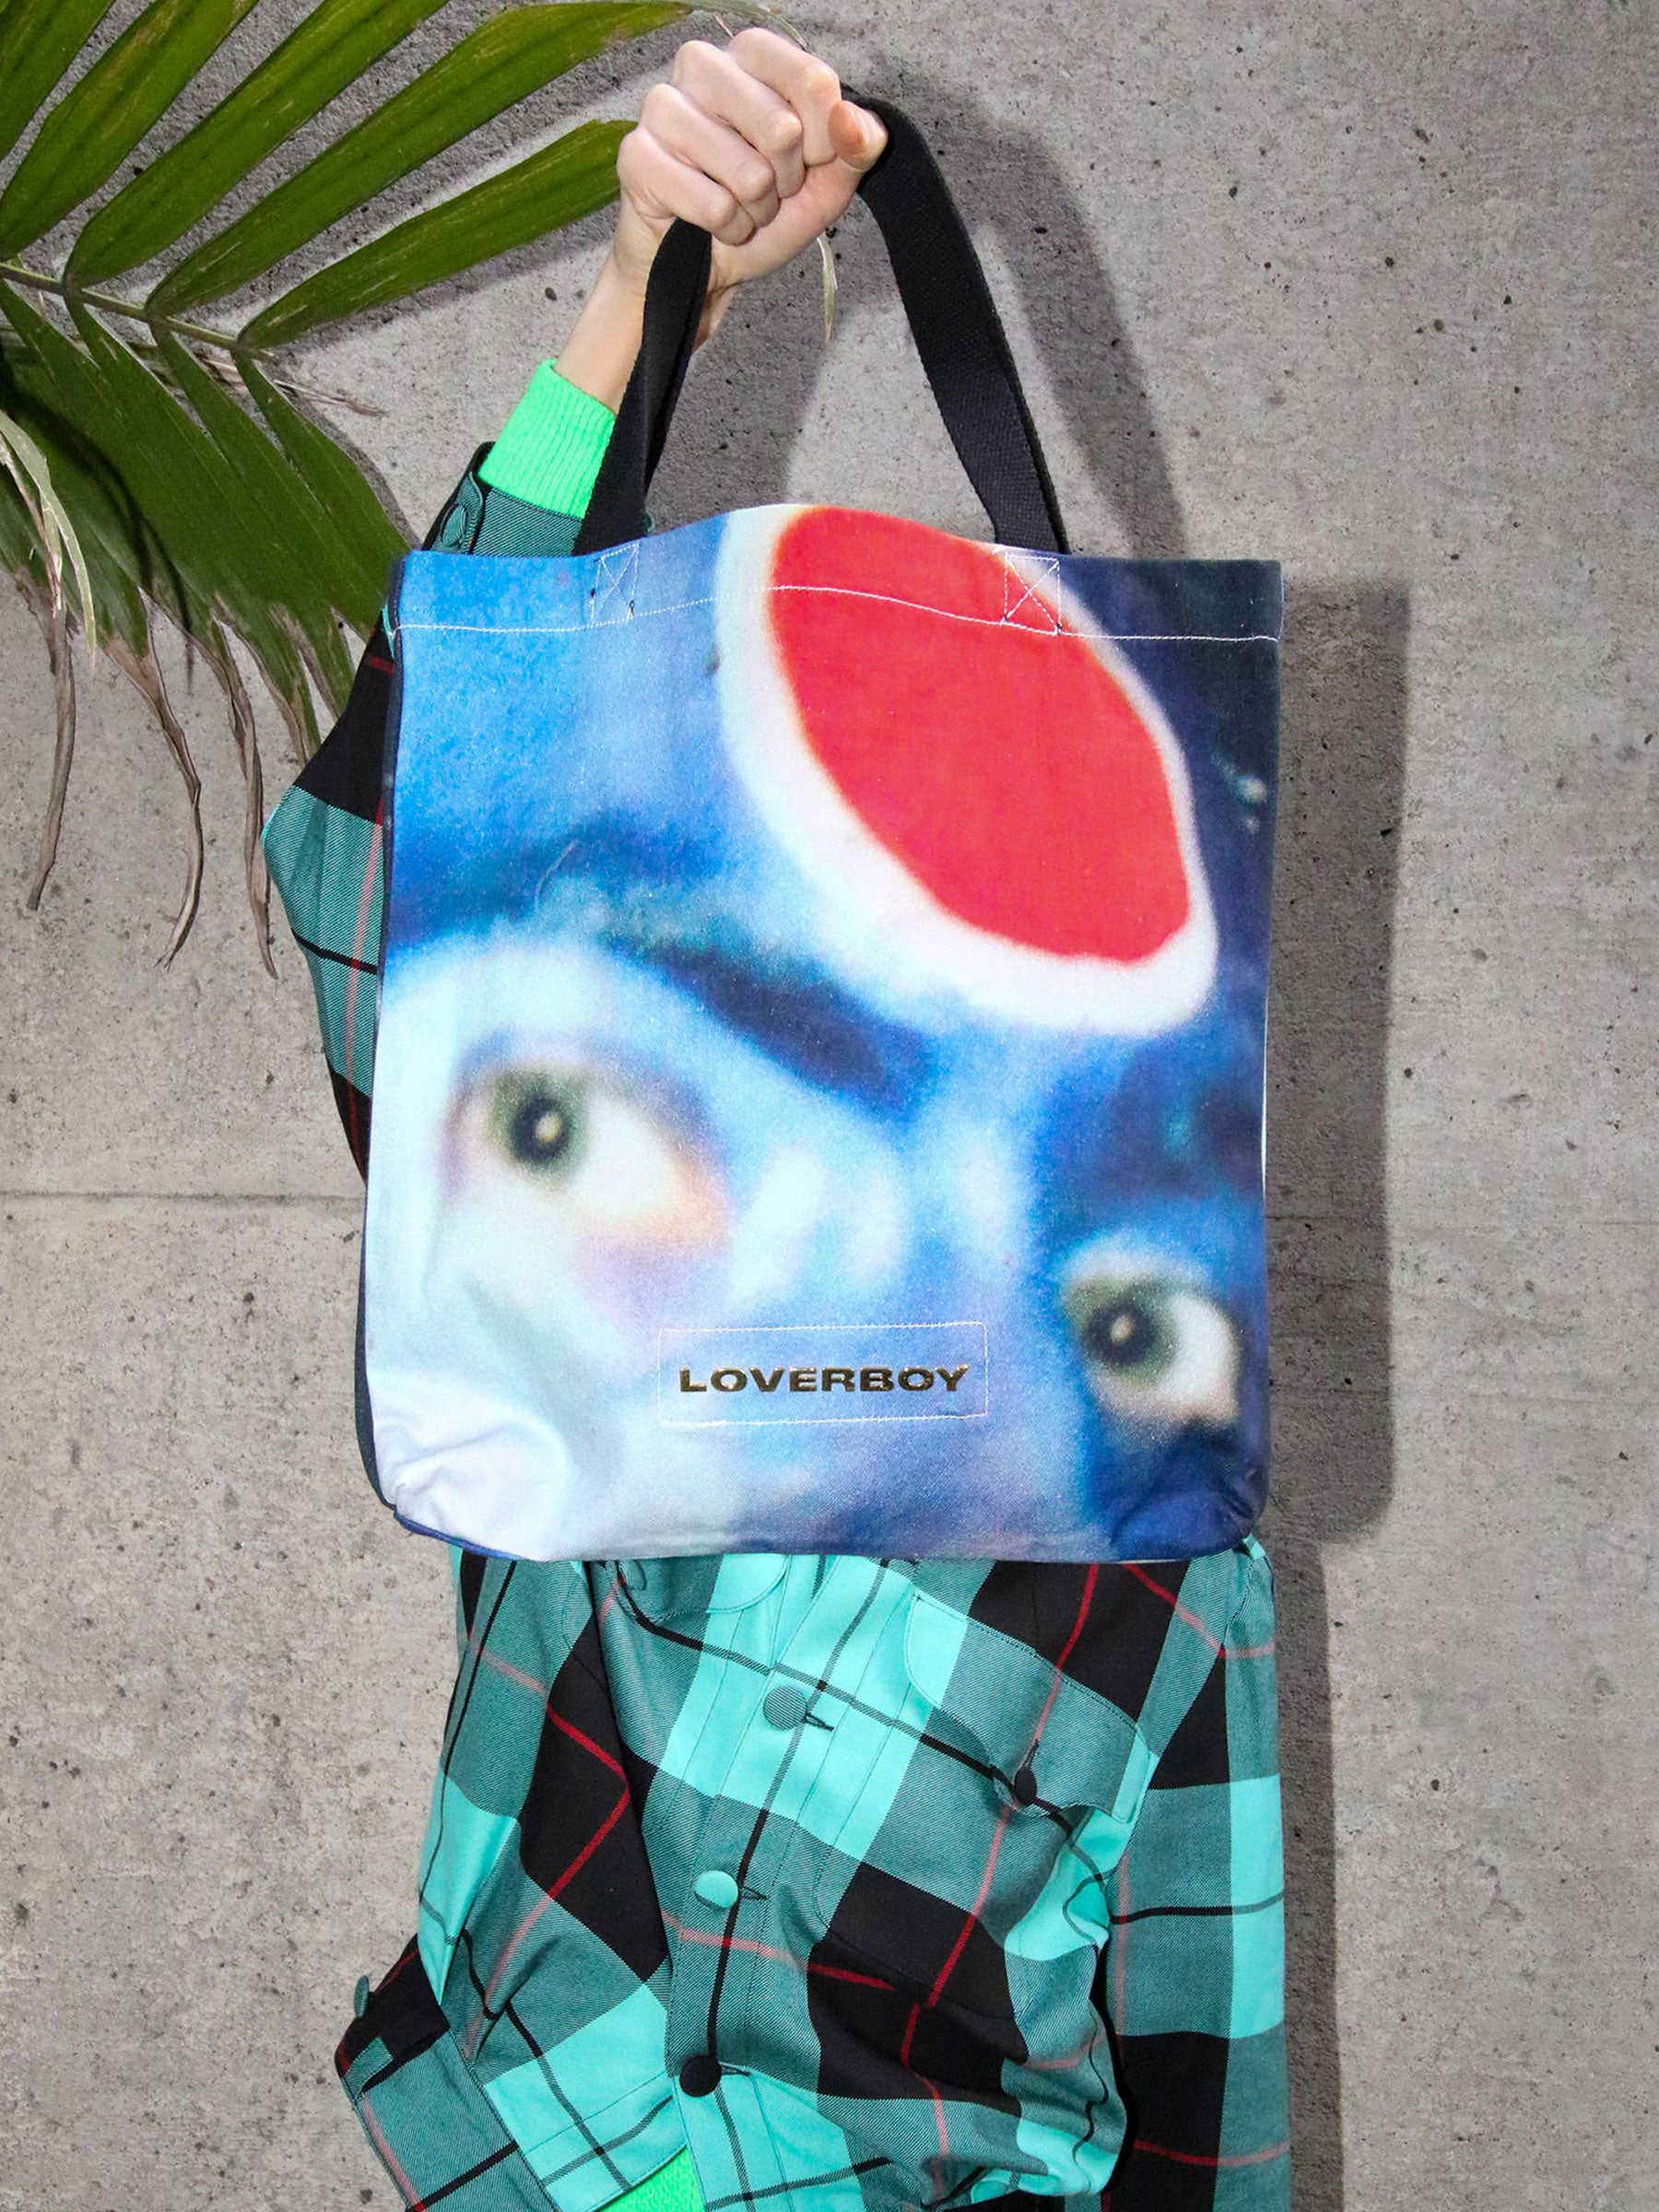 odd92 Charles Jeffrey Loverboy Spring/Summer 2020 Loverboy Tote Bag - 1